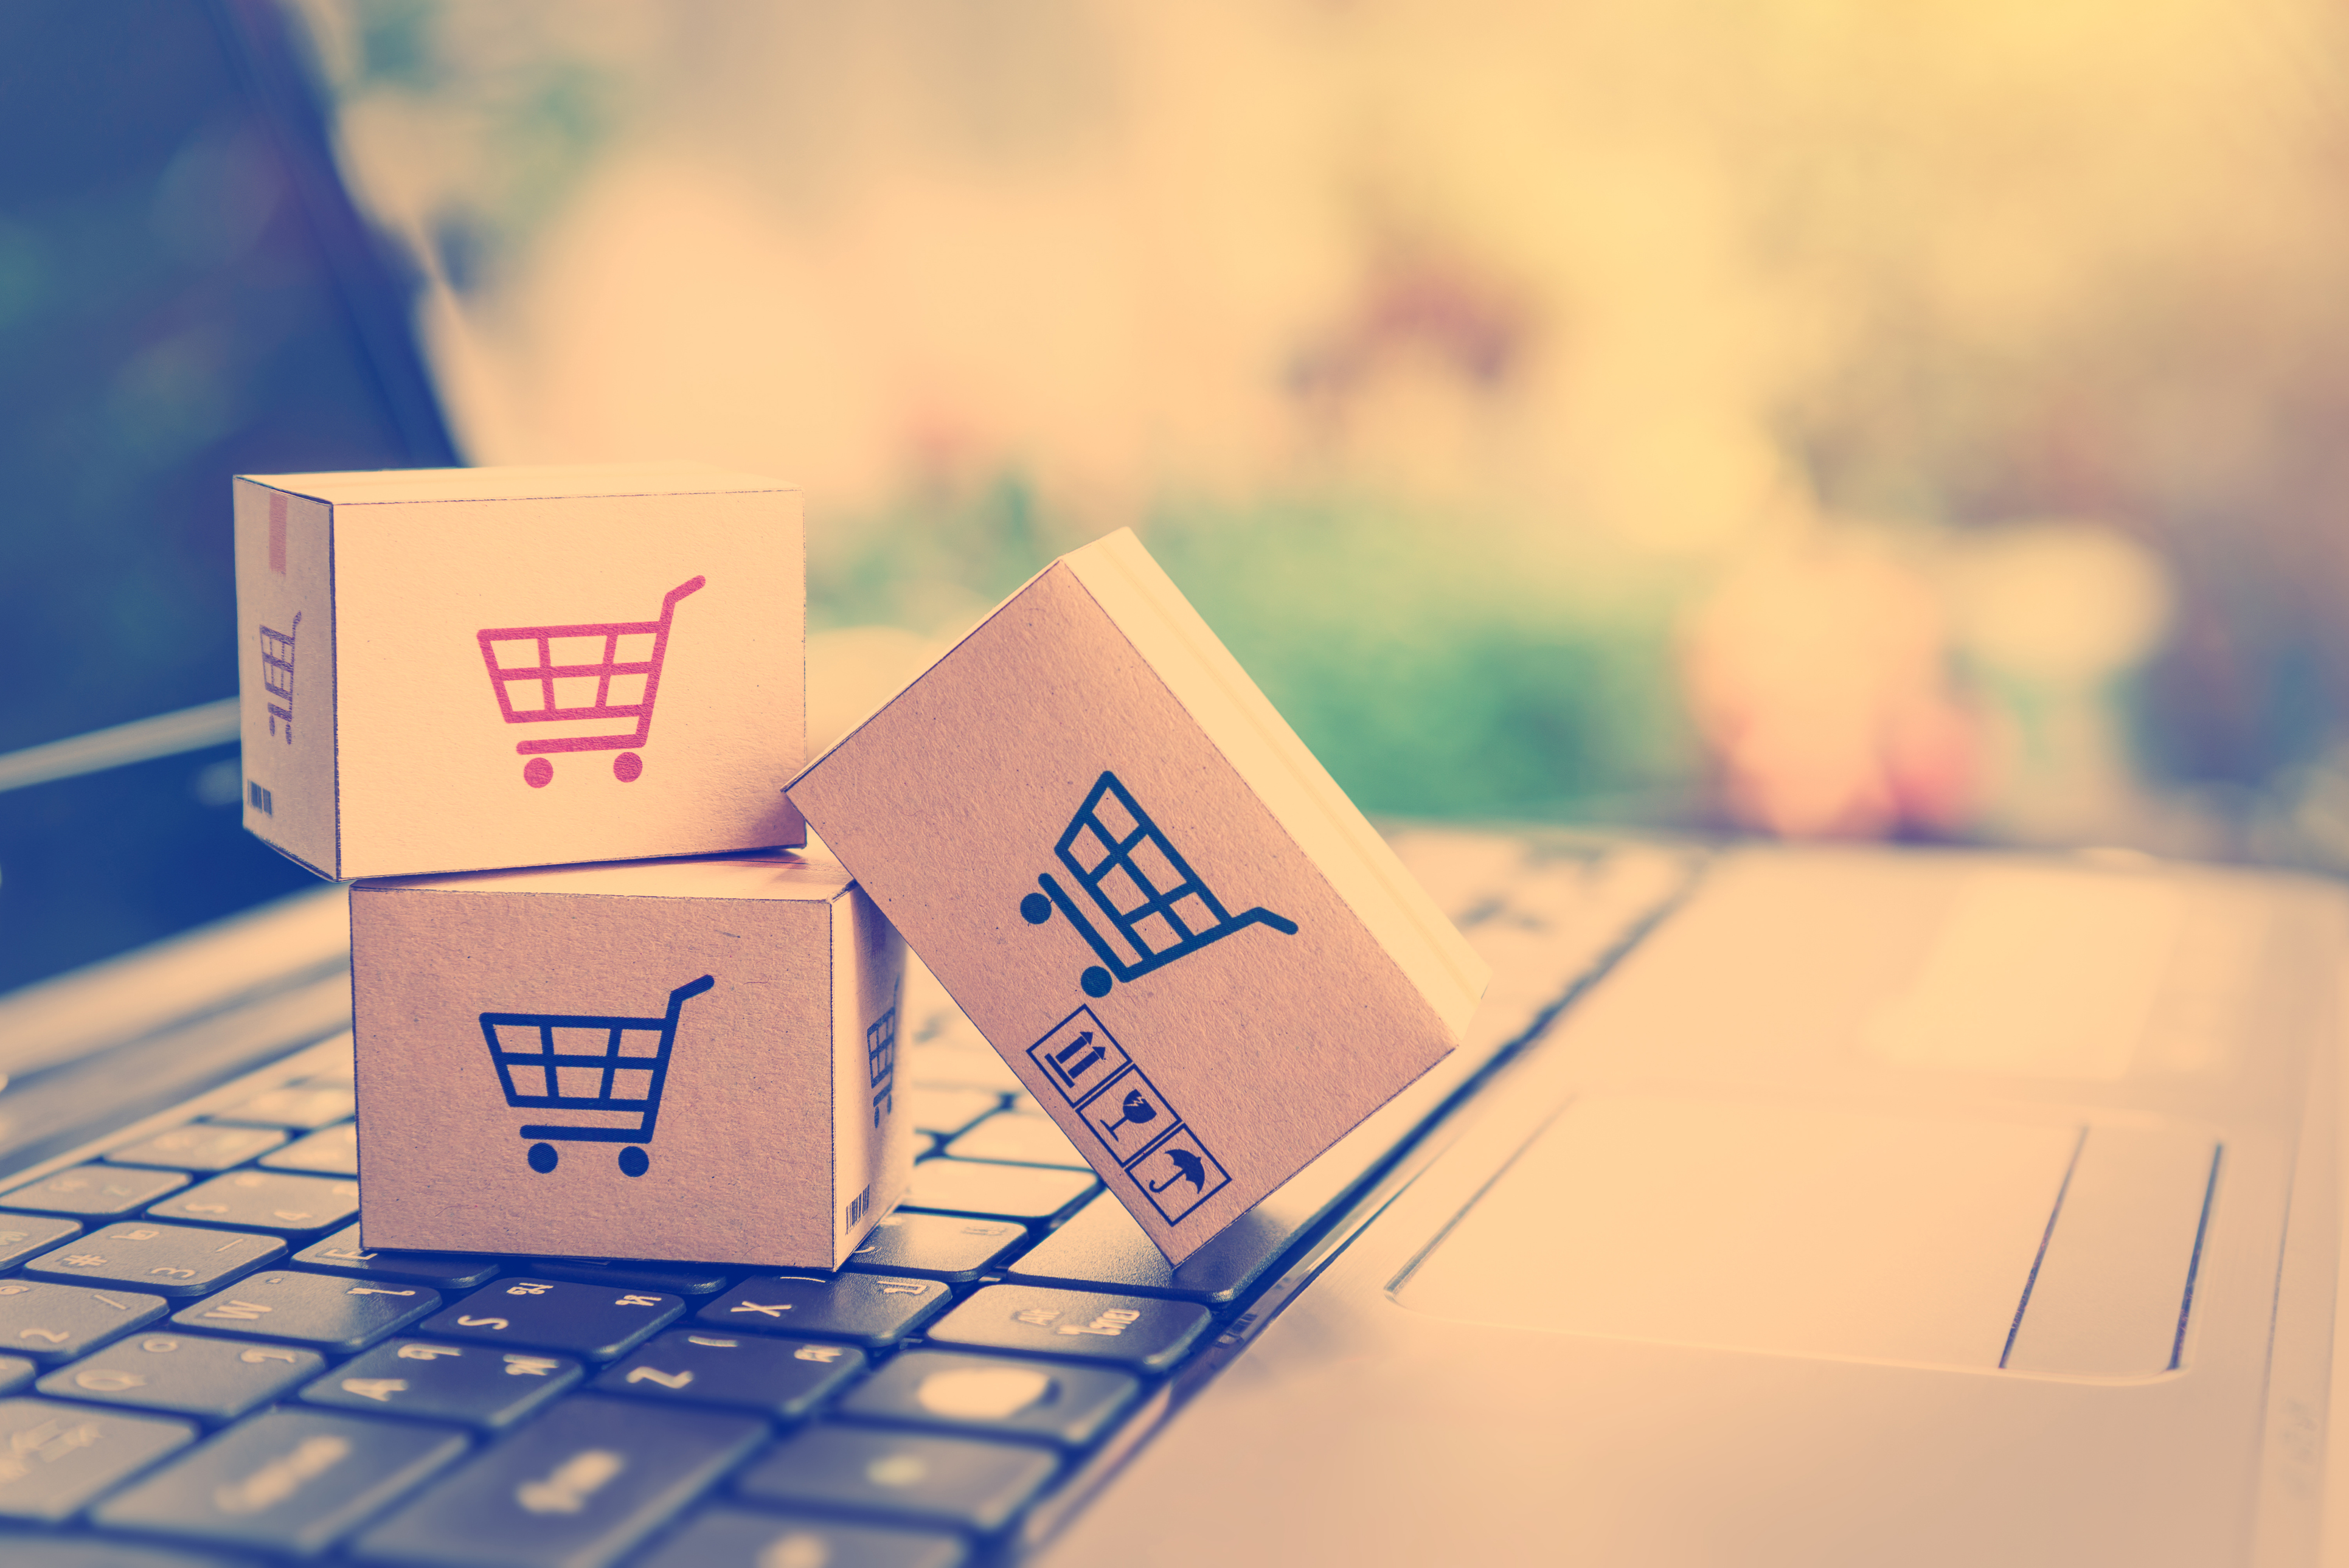 e-commerce inventory management